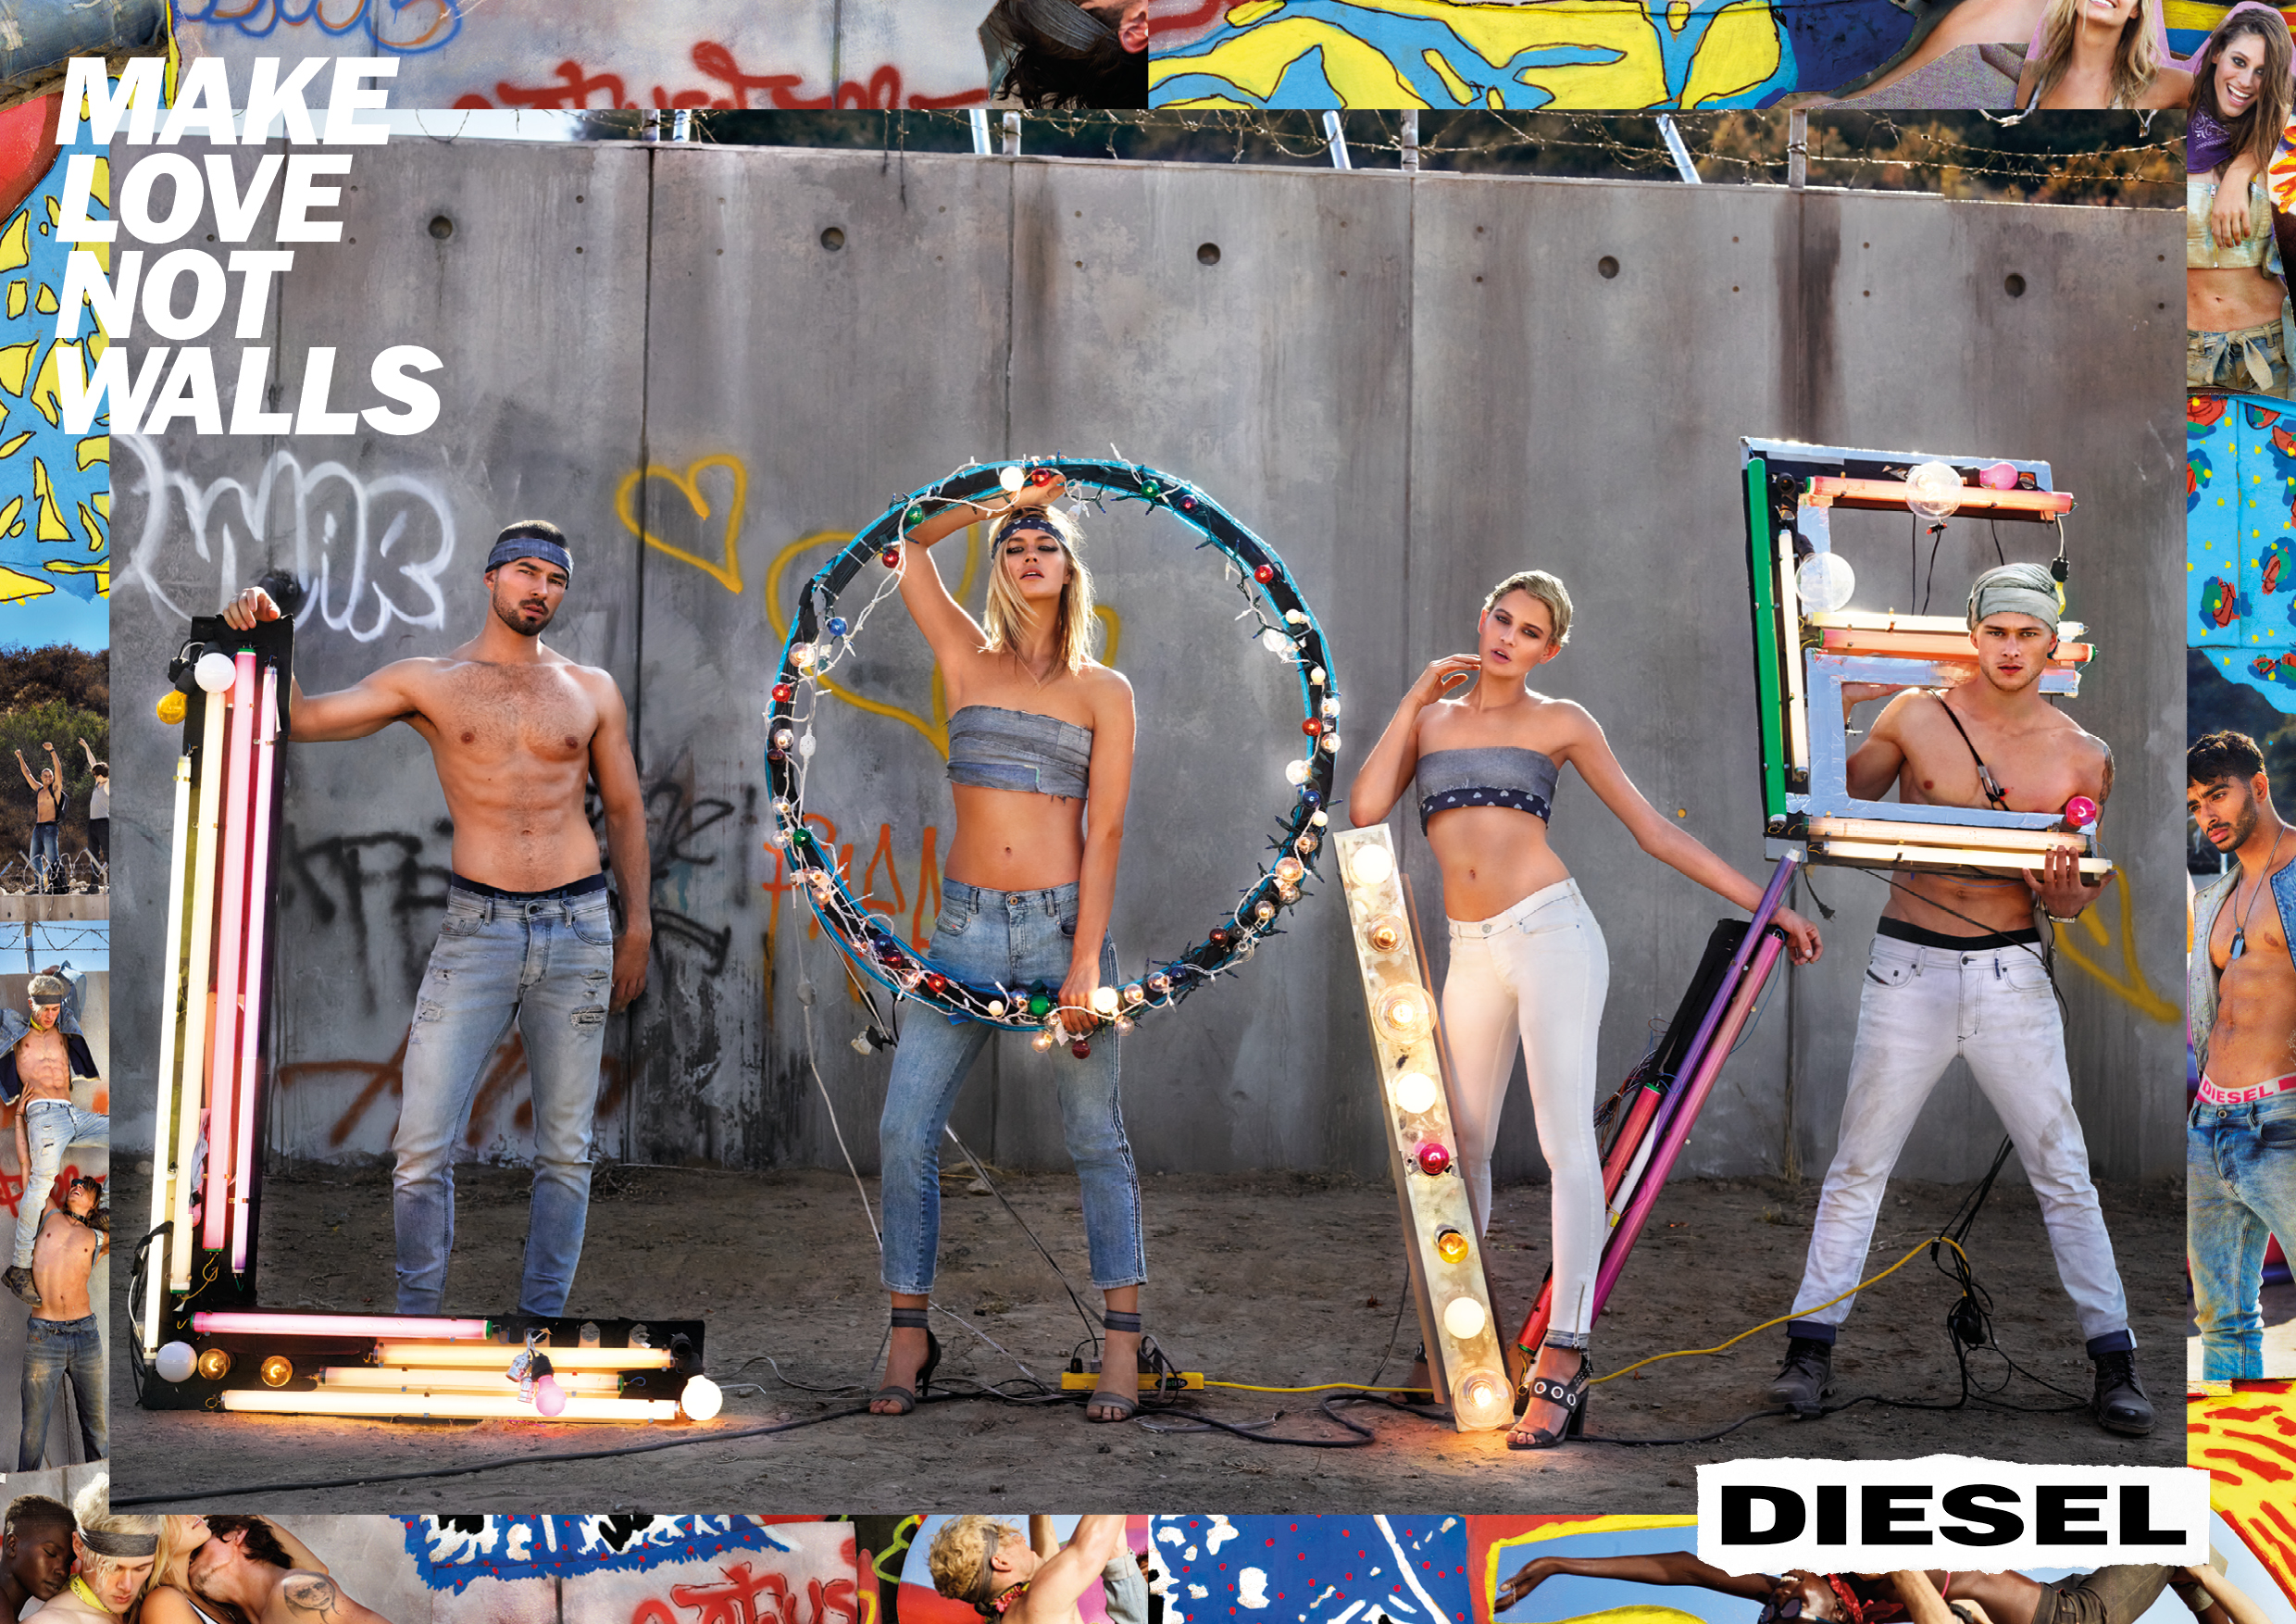 Diesel_Campaign_SS17_Denim_Group_Summerwashes_Love_DPS.jpg